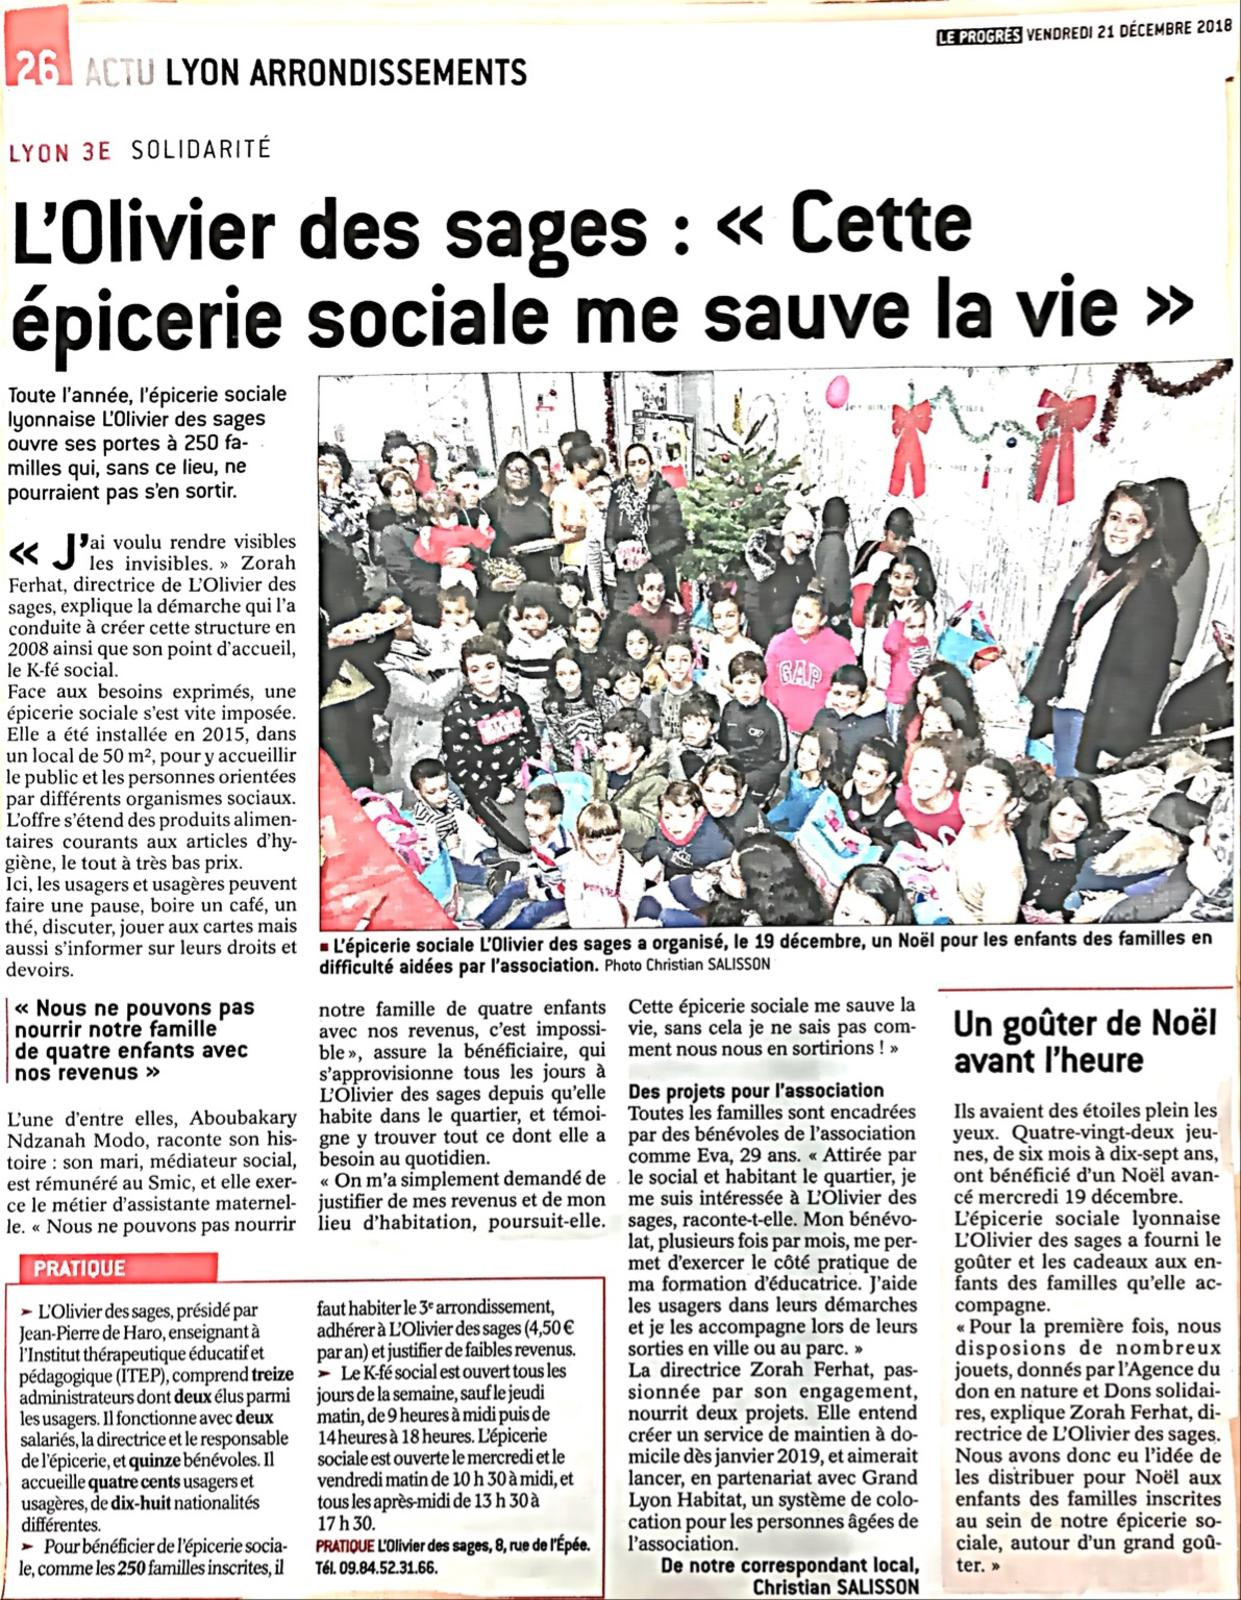 gouter a l ods 21.12.2018-page-001